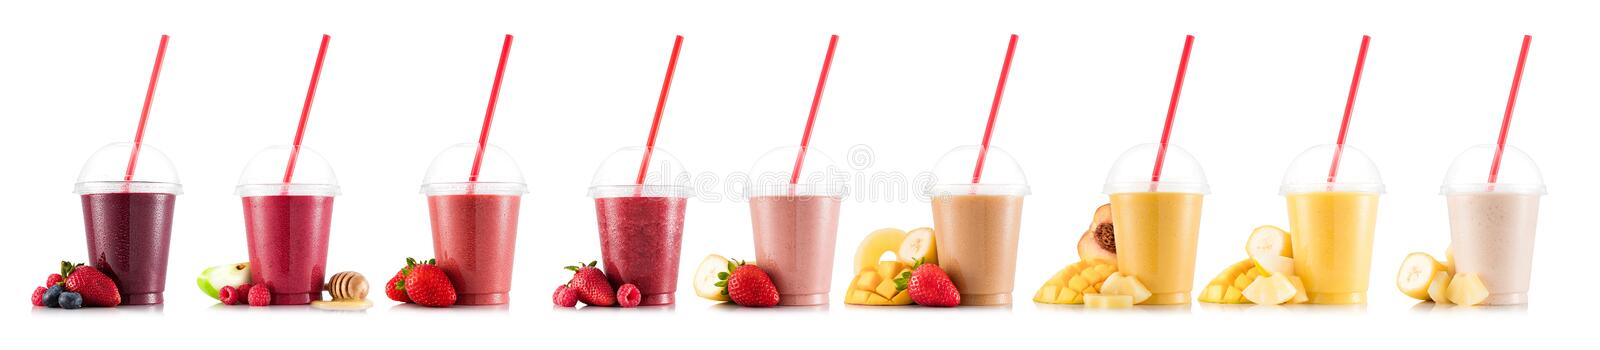 Nine tastes of smoothie in plastic cup royalty free stock photos